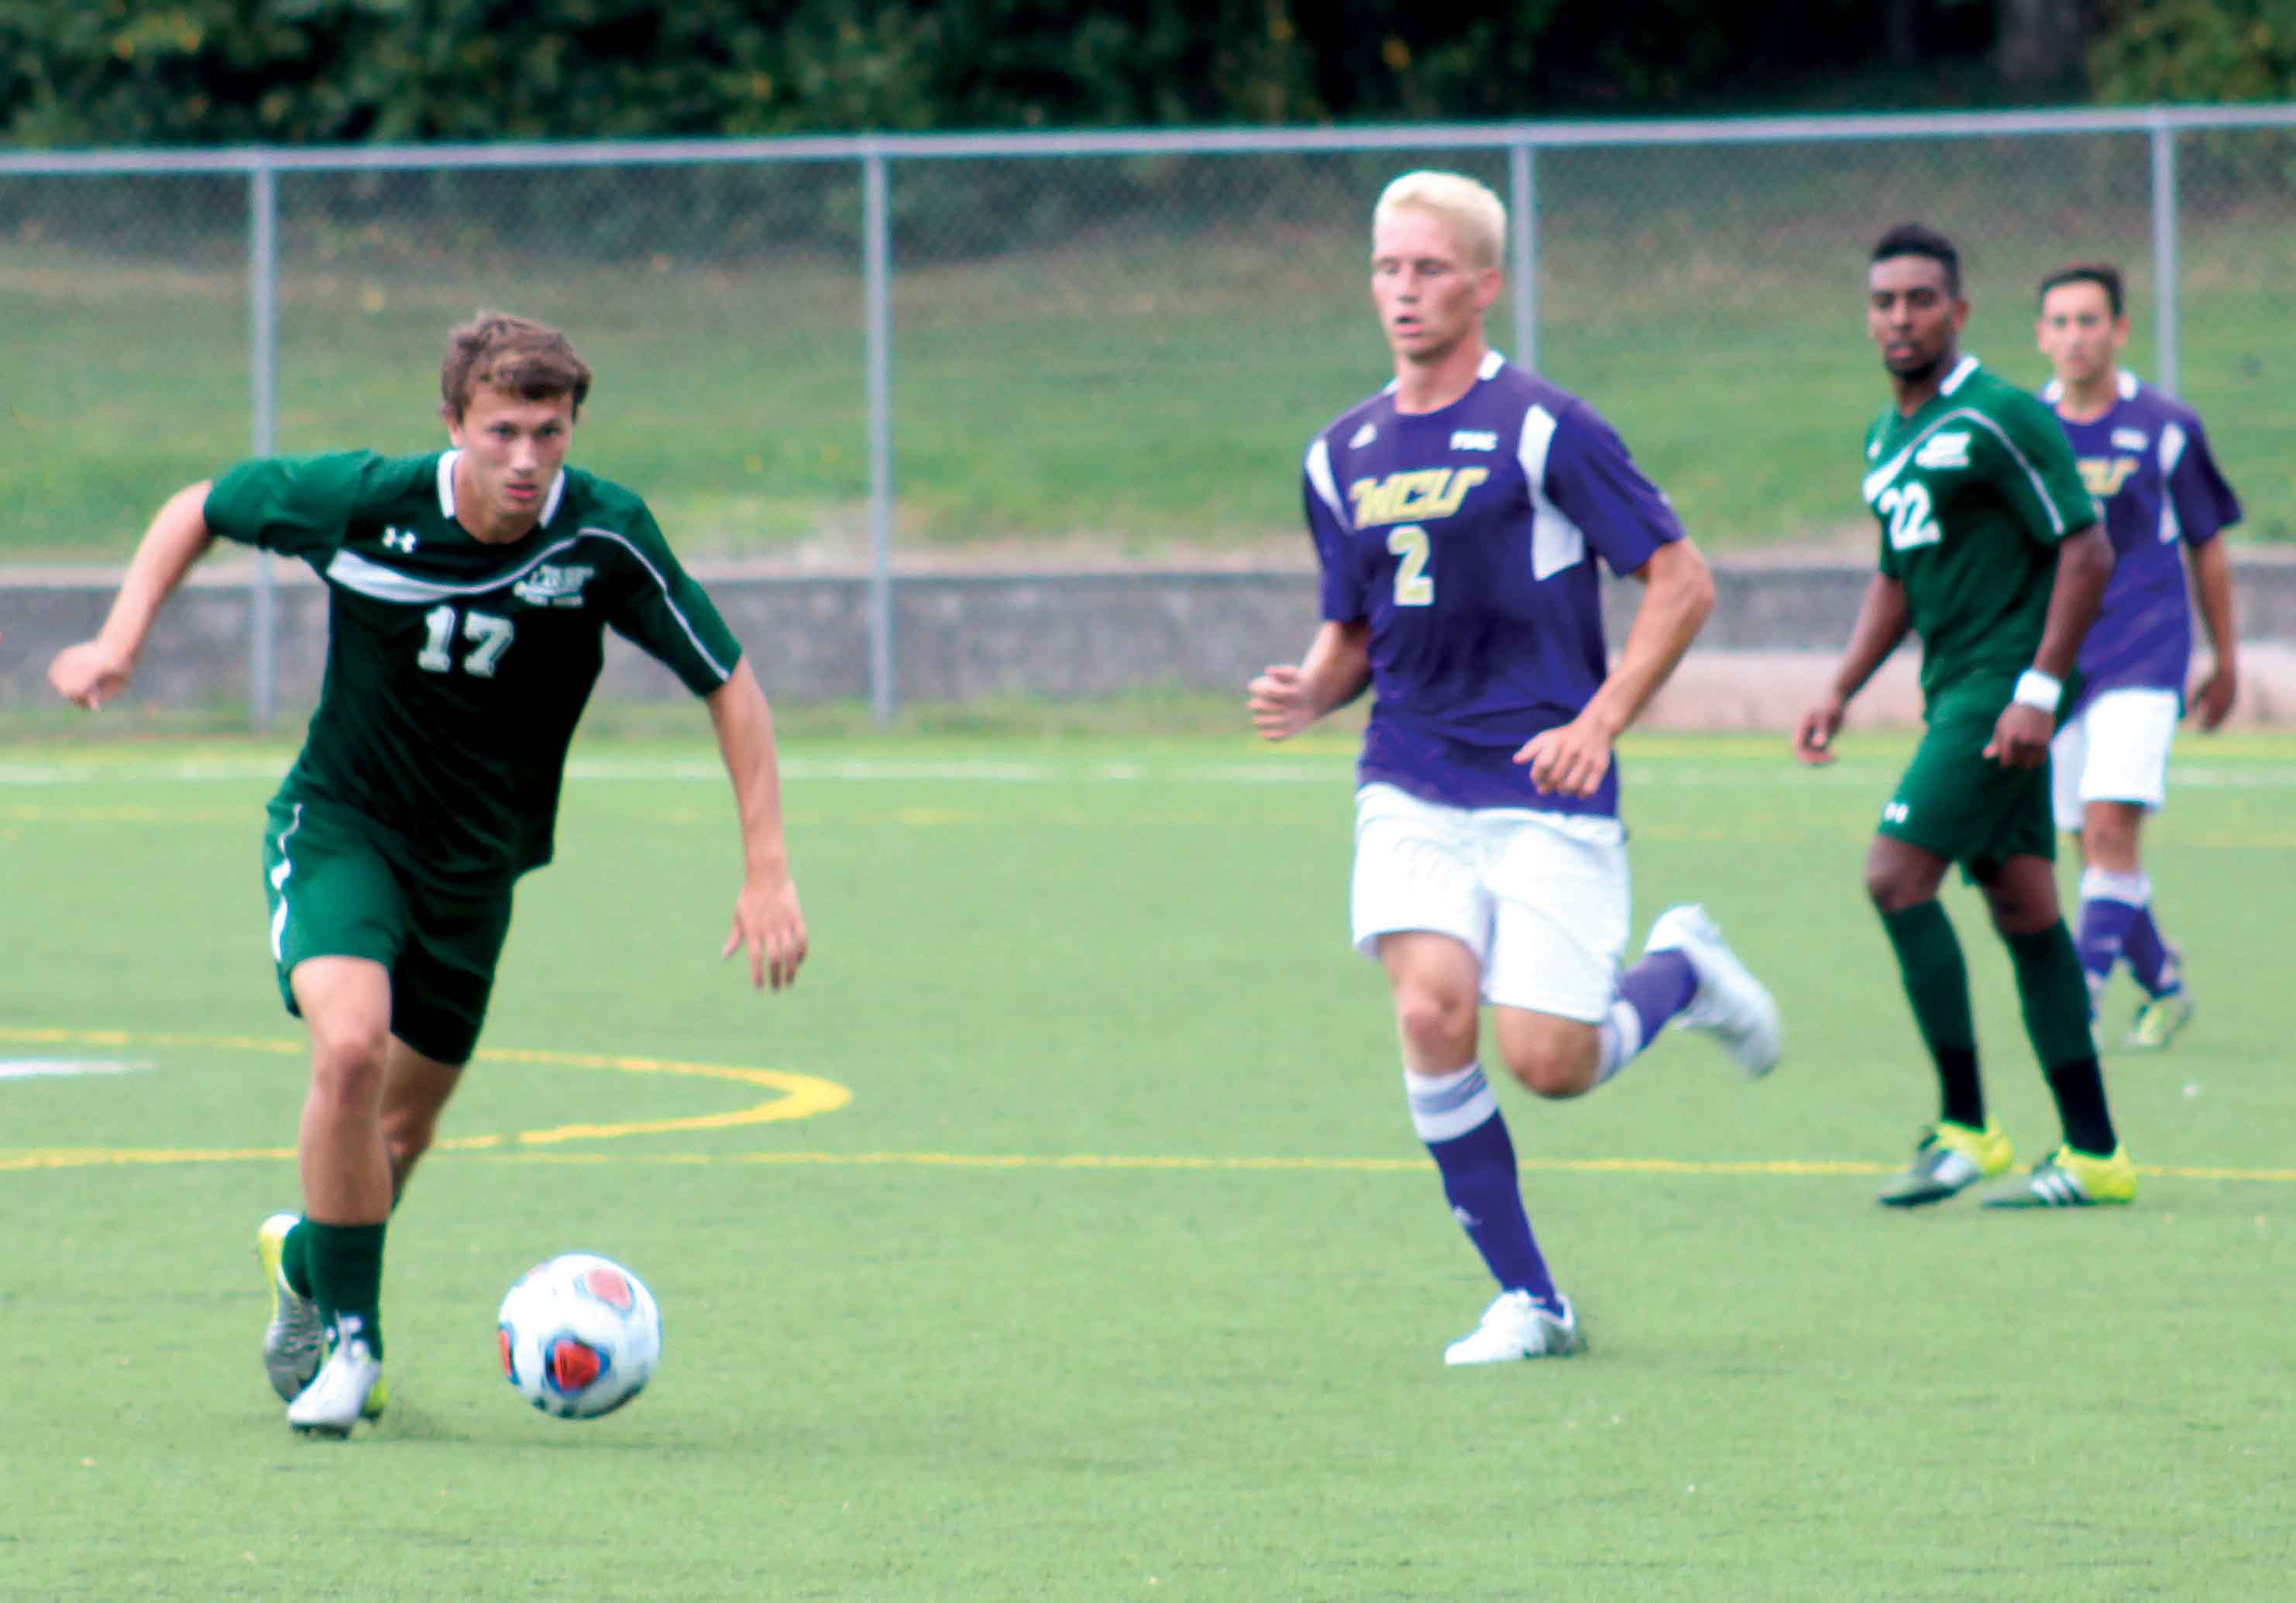 Junior Joseph Korb (17) scored the Lakers winning goal in double overtime giving the Lakers a 3-2 win over West Chester.